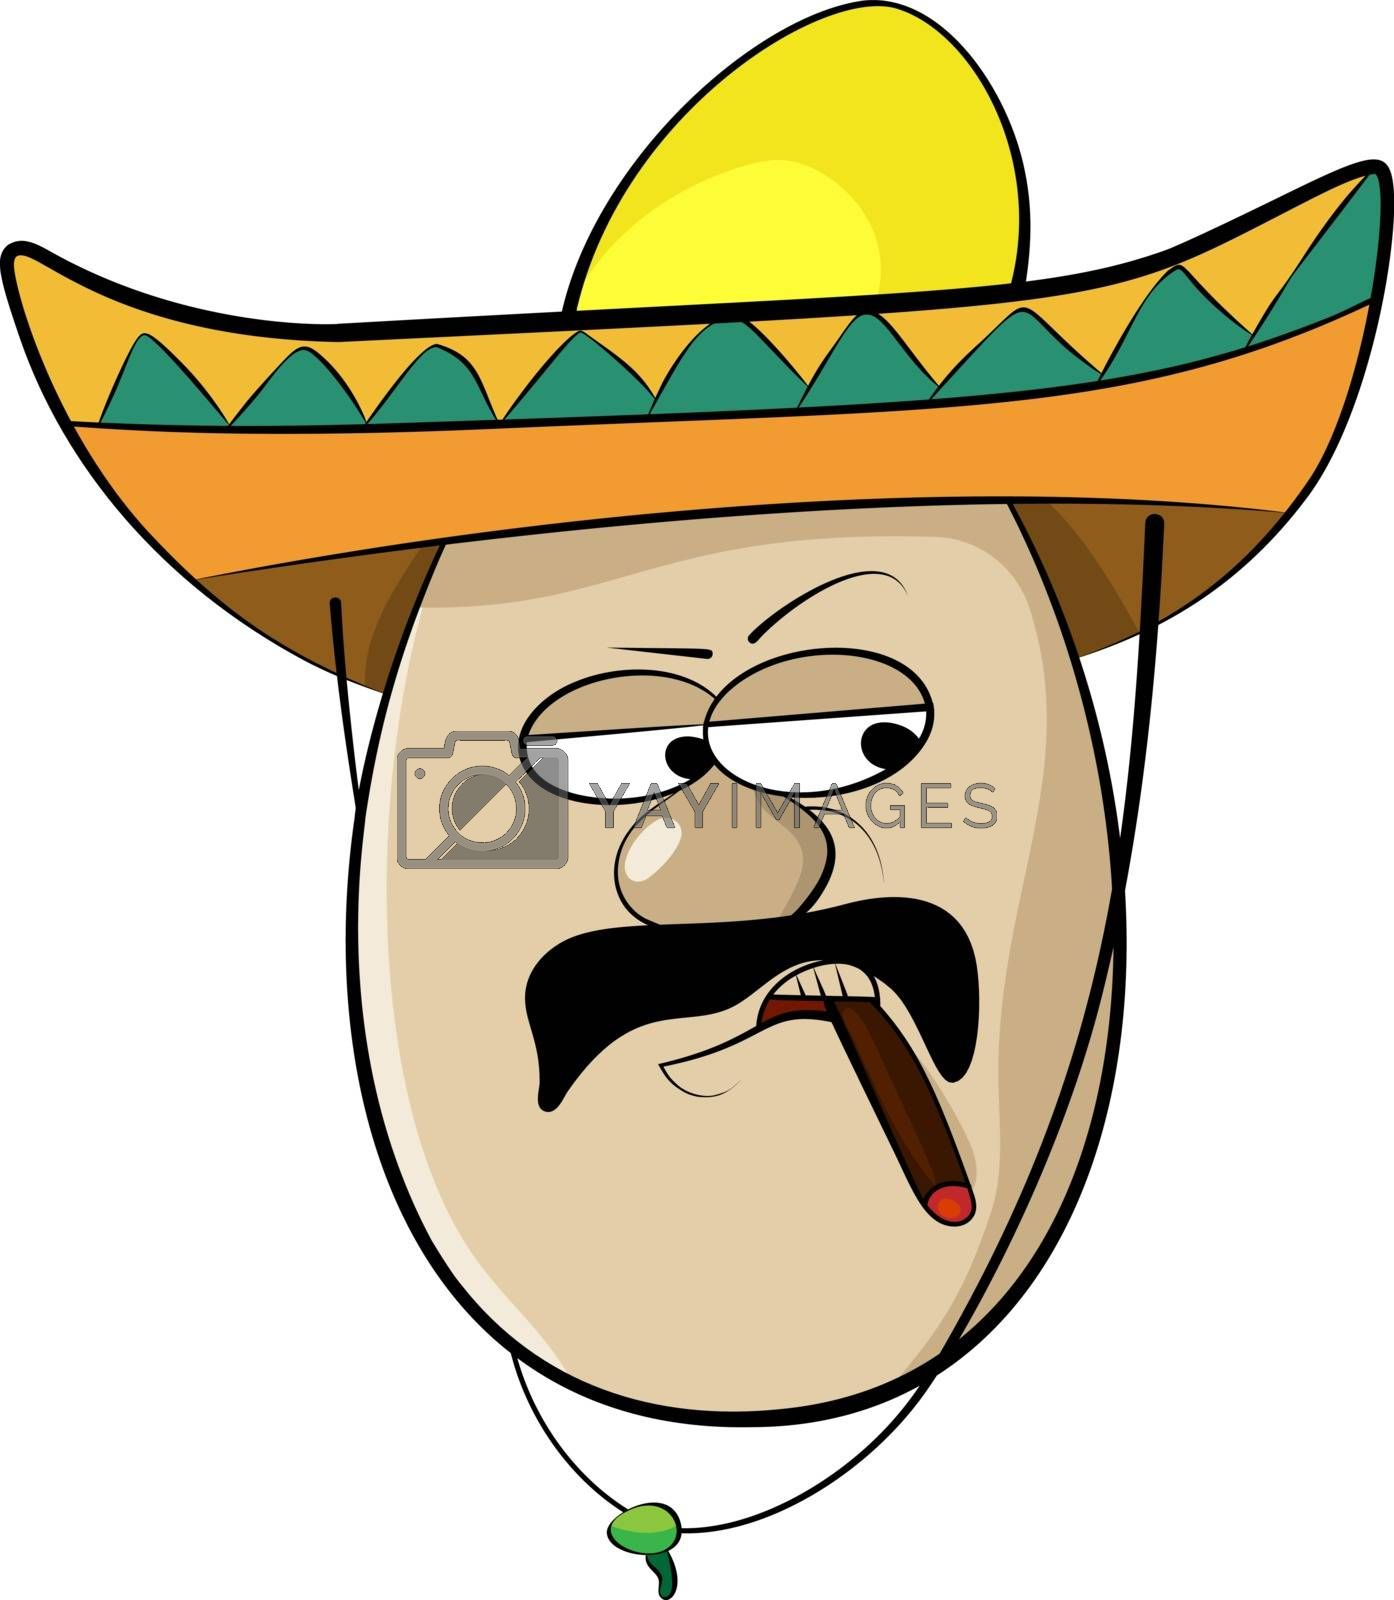 Mexican Funny Cartoon Egg Face Character Vector Illustration